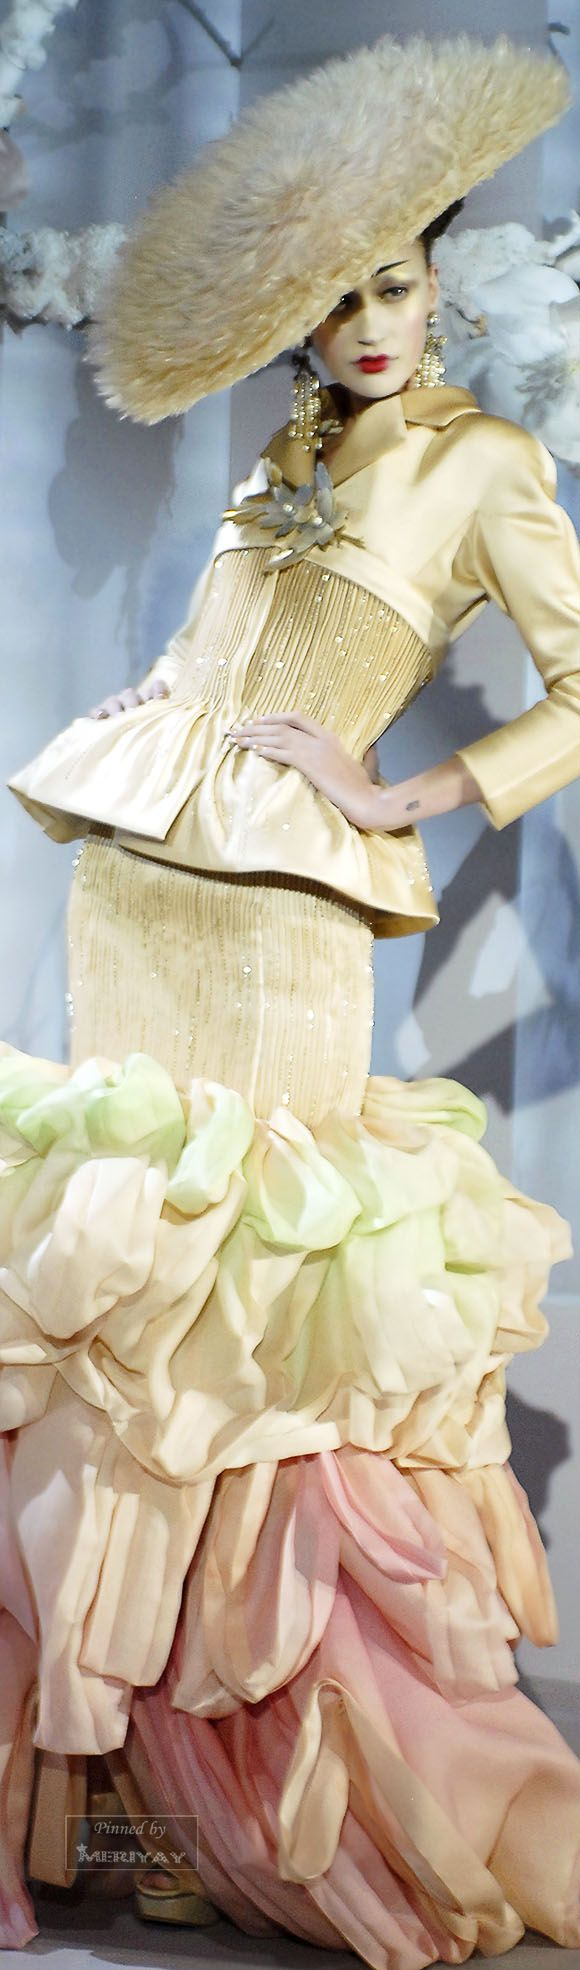 Christian Dior SS 2007 | House of Beccaria#